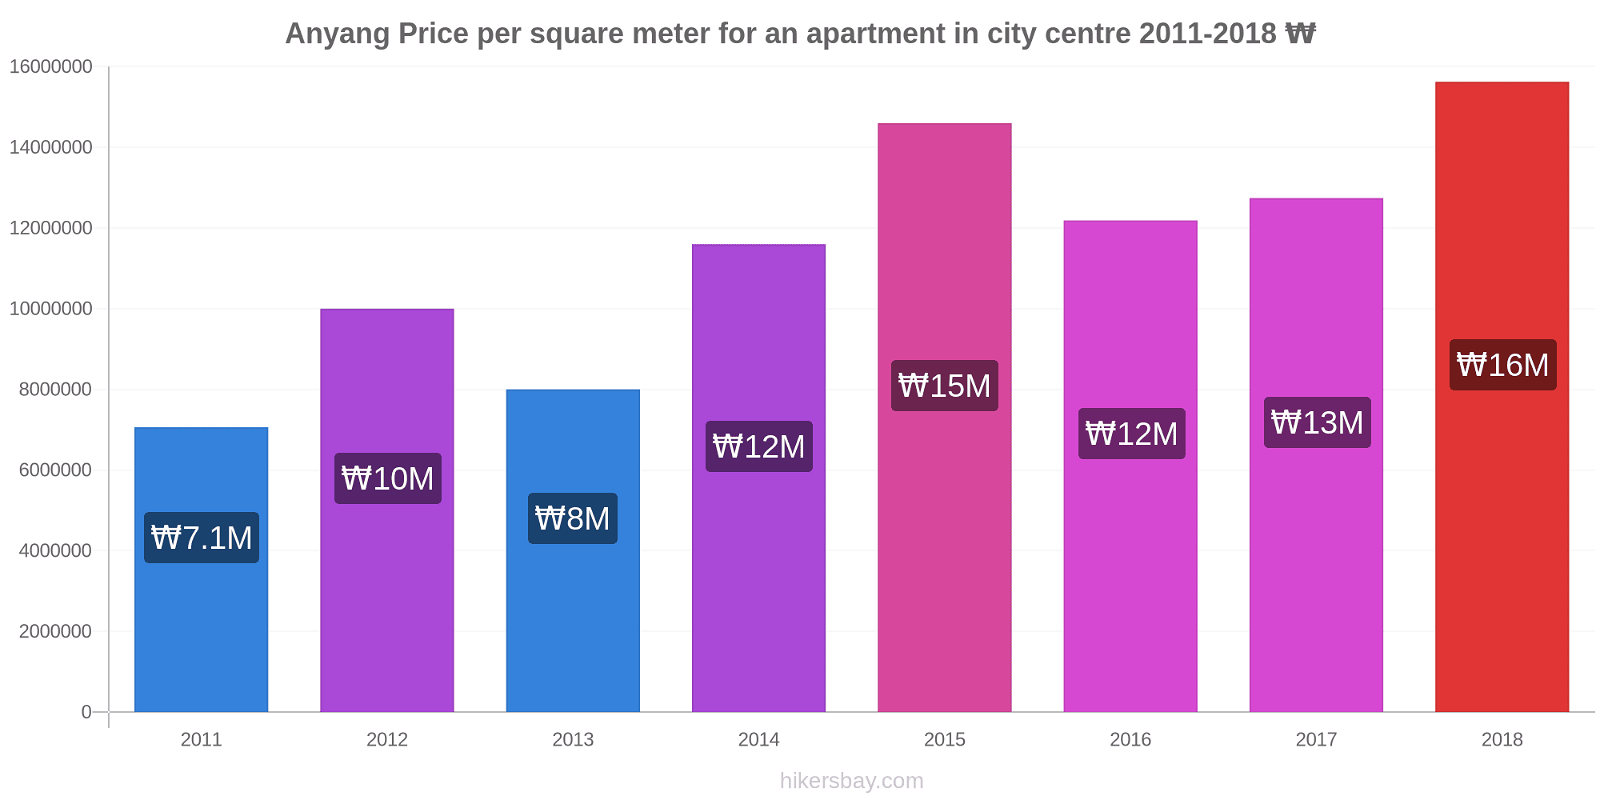 Anyang price changes Price per square meter for an apartment in city centre hikersbay.com